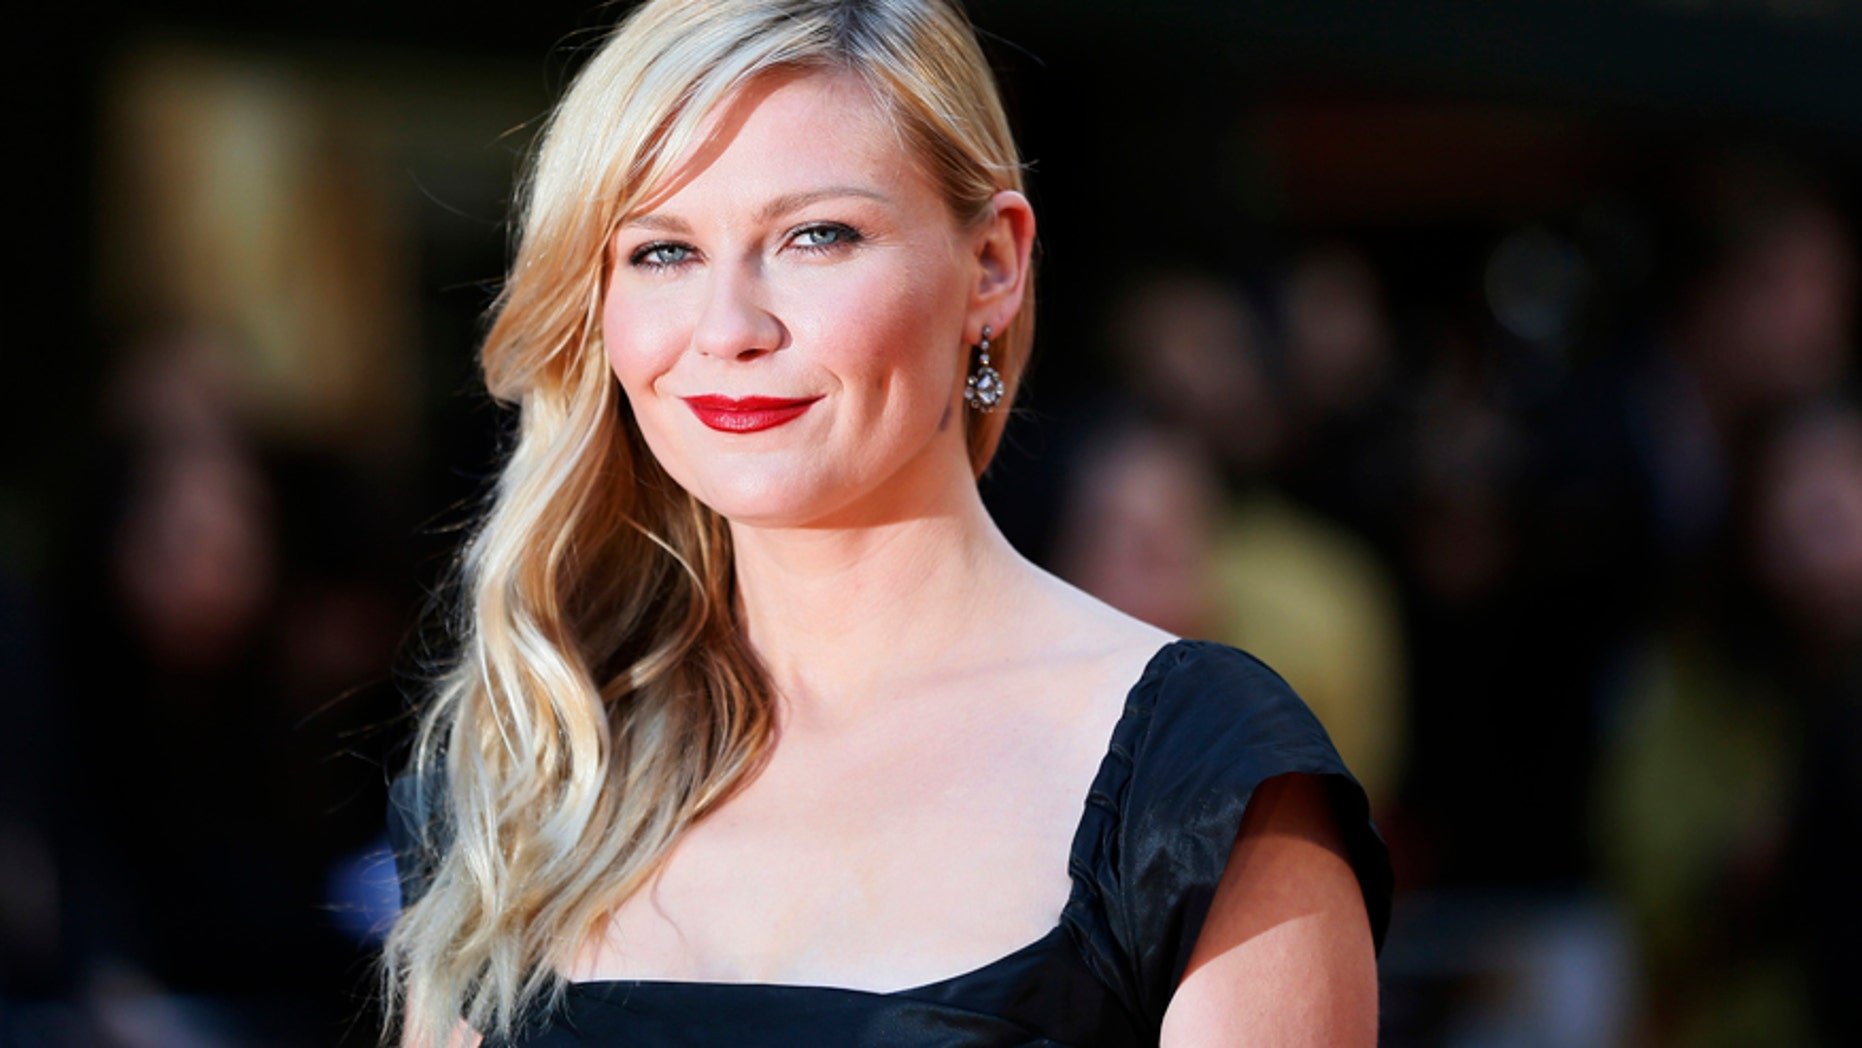 Actress Kirsten Dunst arrives for the British premiere of 'The Two Faces of January' at the Curzon Mayfair in London May 13, 2014.